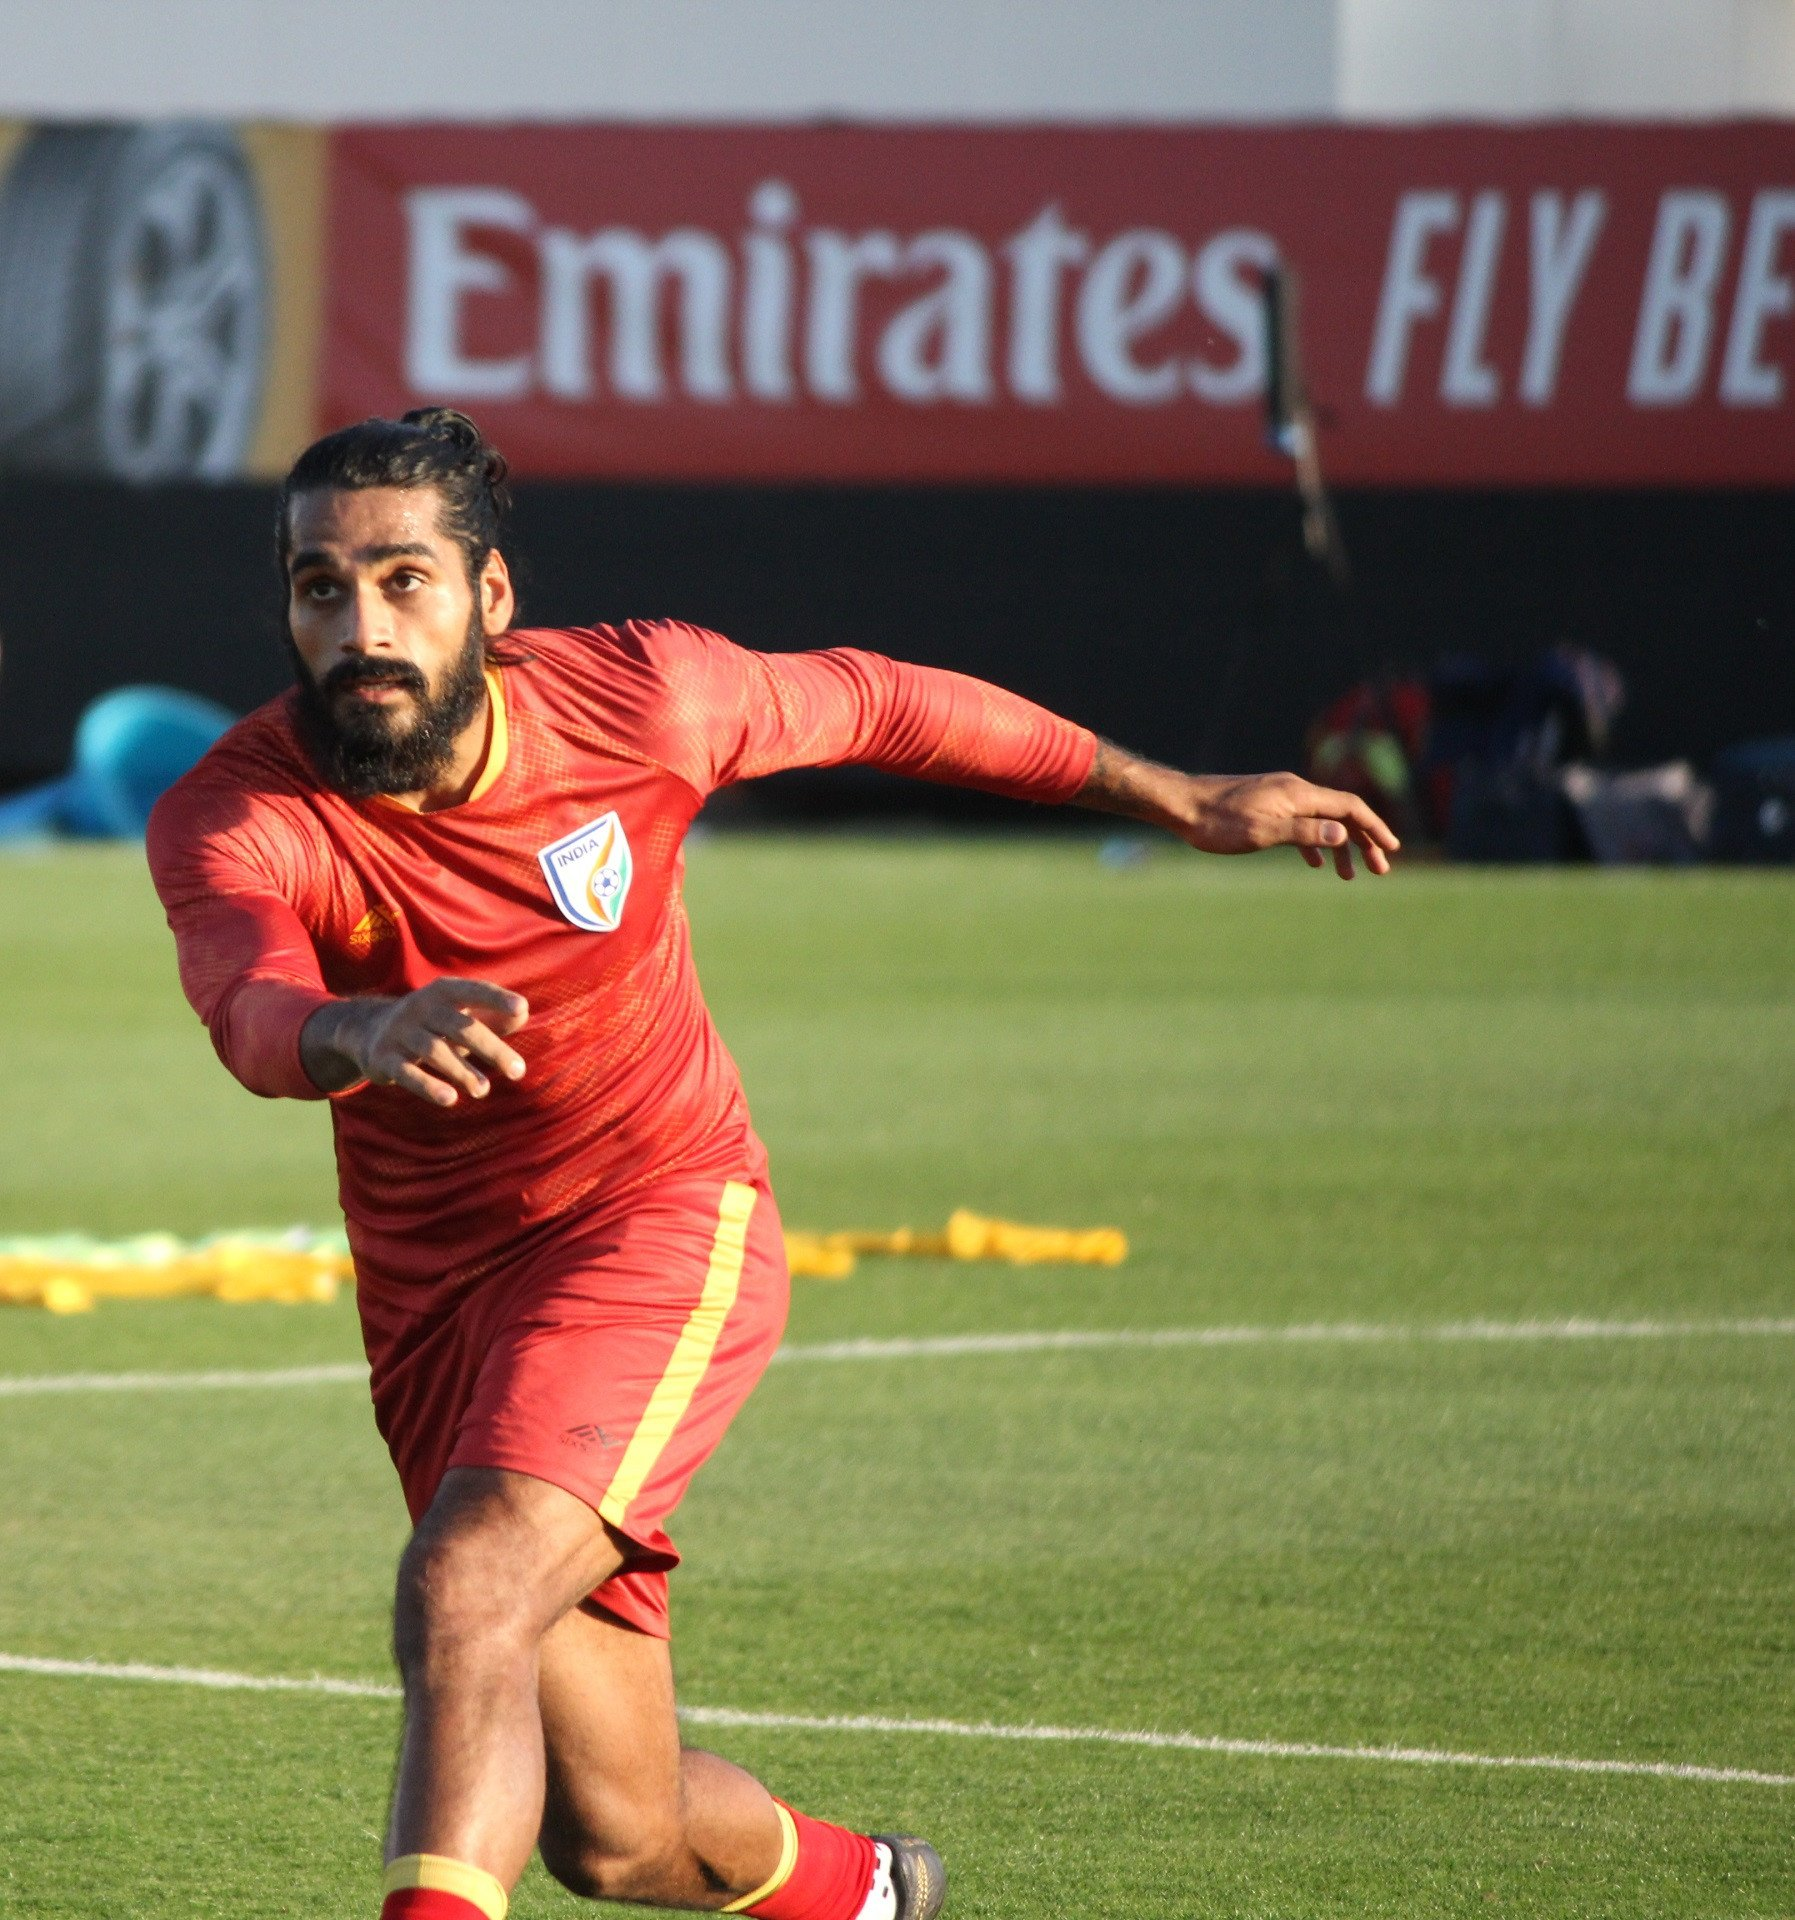 ISL 2019/20: On-field rival clubs come together to offer recovering Jhingan a helping hand